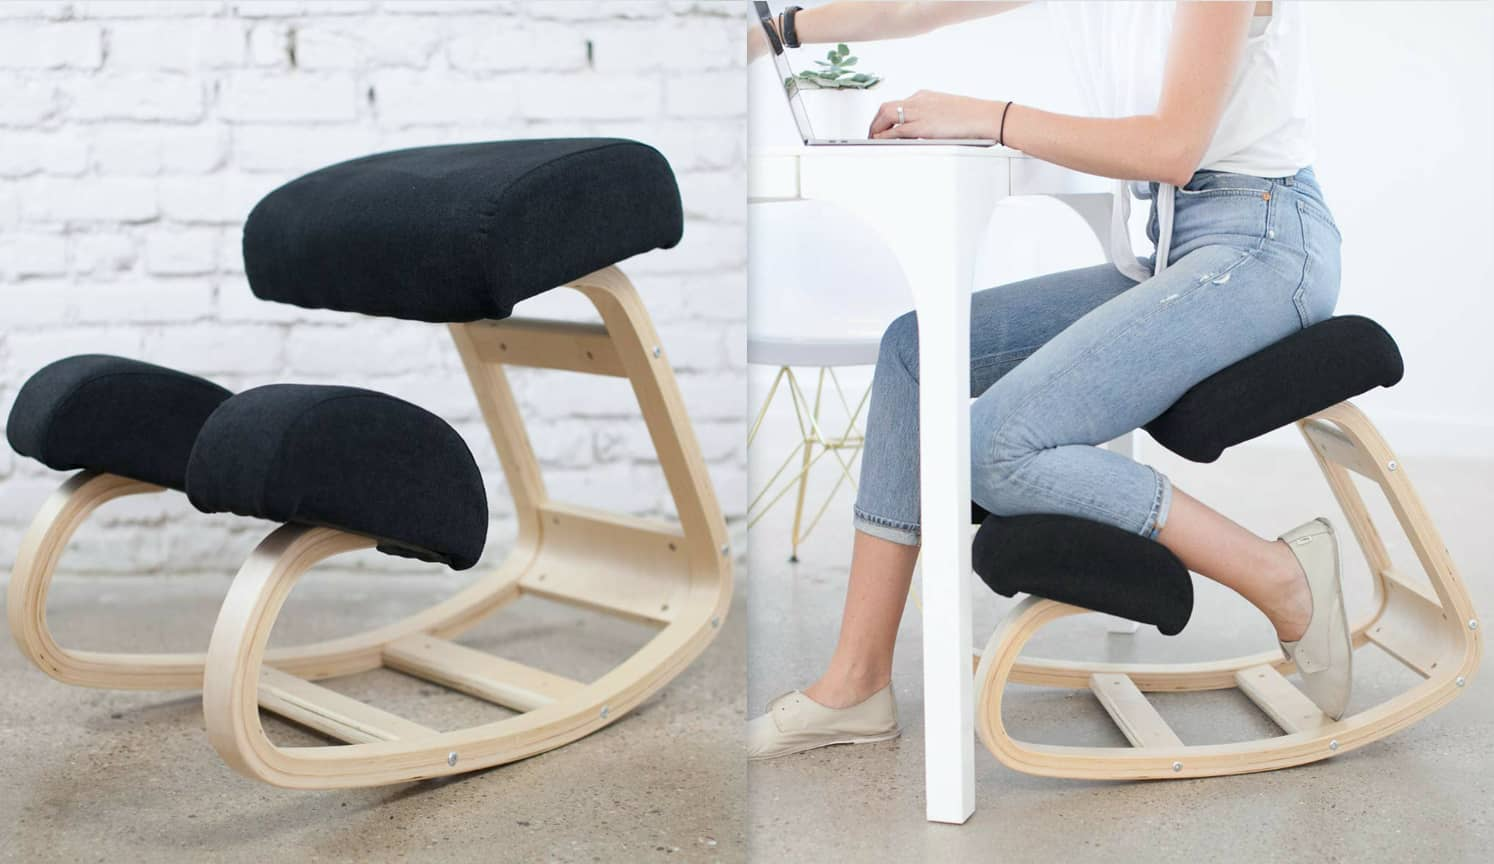 Kneeling Posture Chair as the third related product of Ergonomic Computer Chair